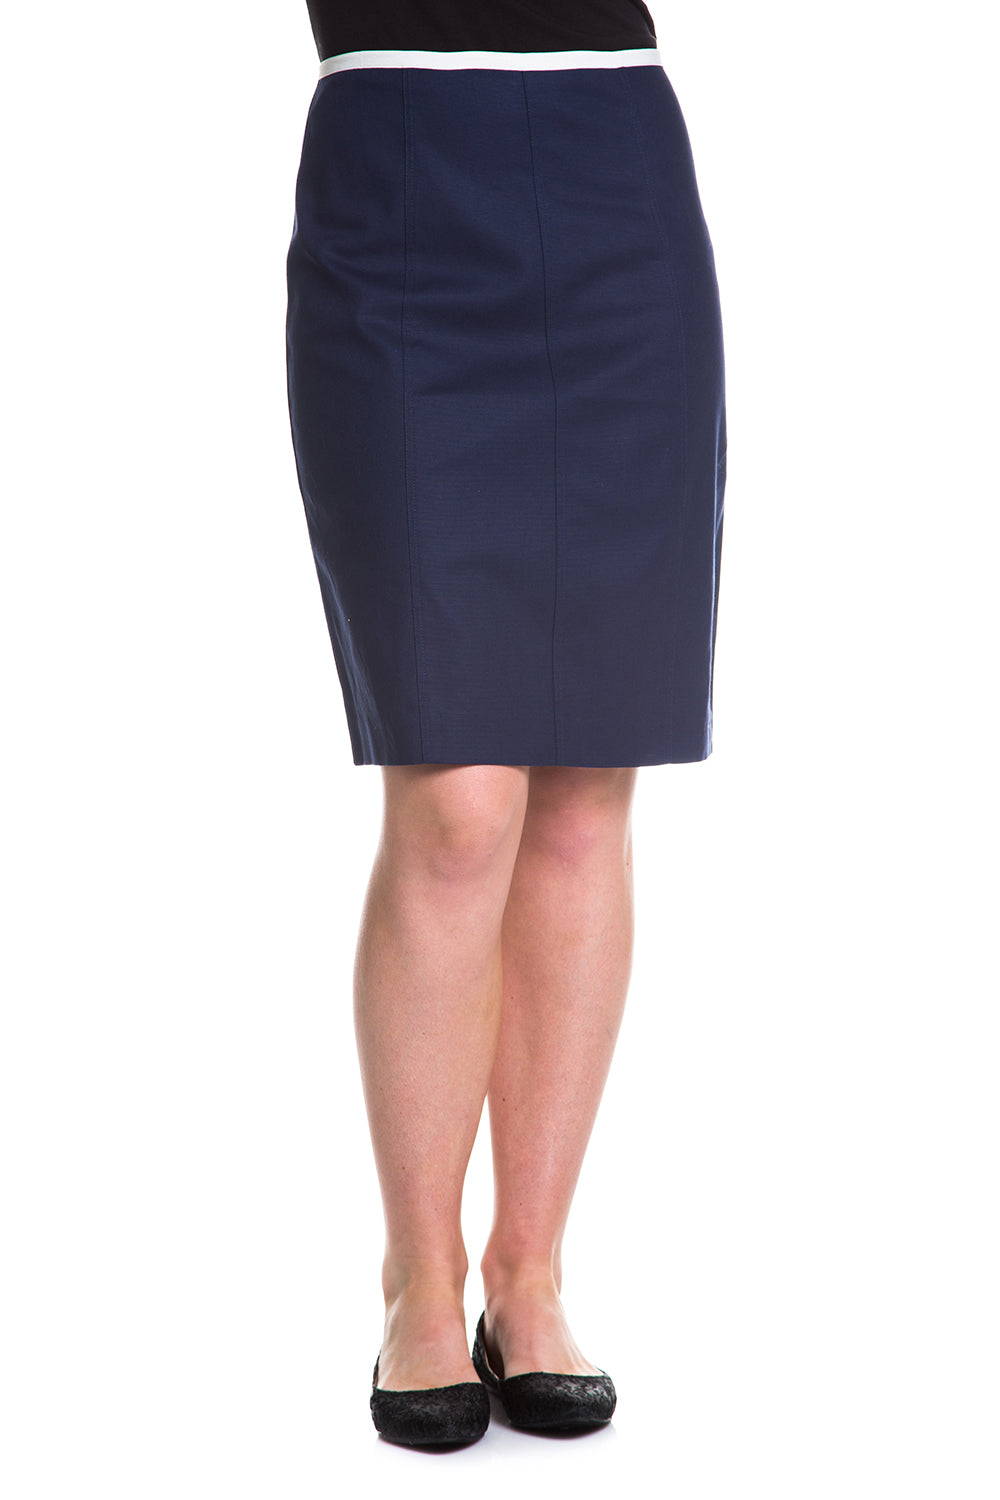 Type 4 Sagamore Skirt